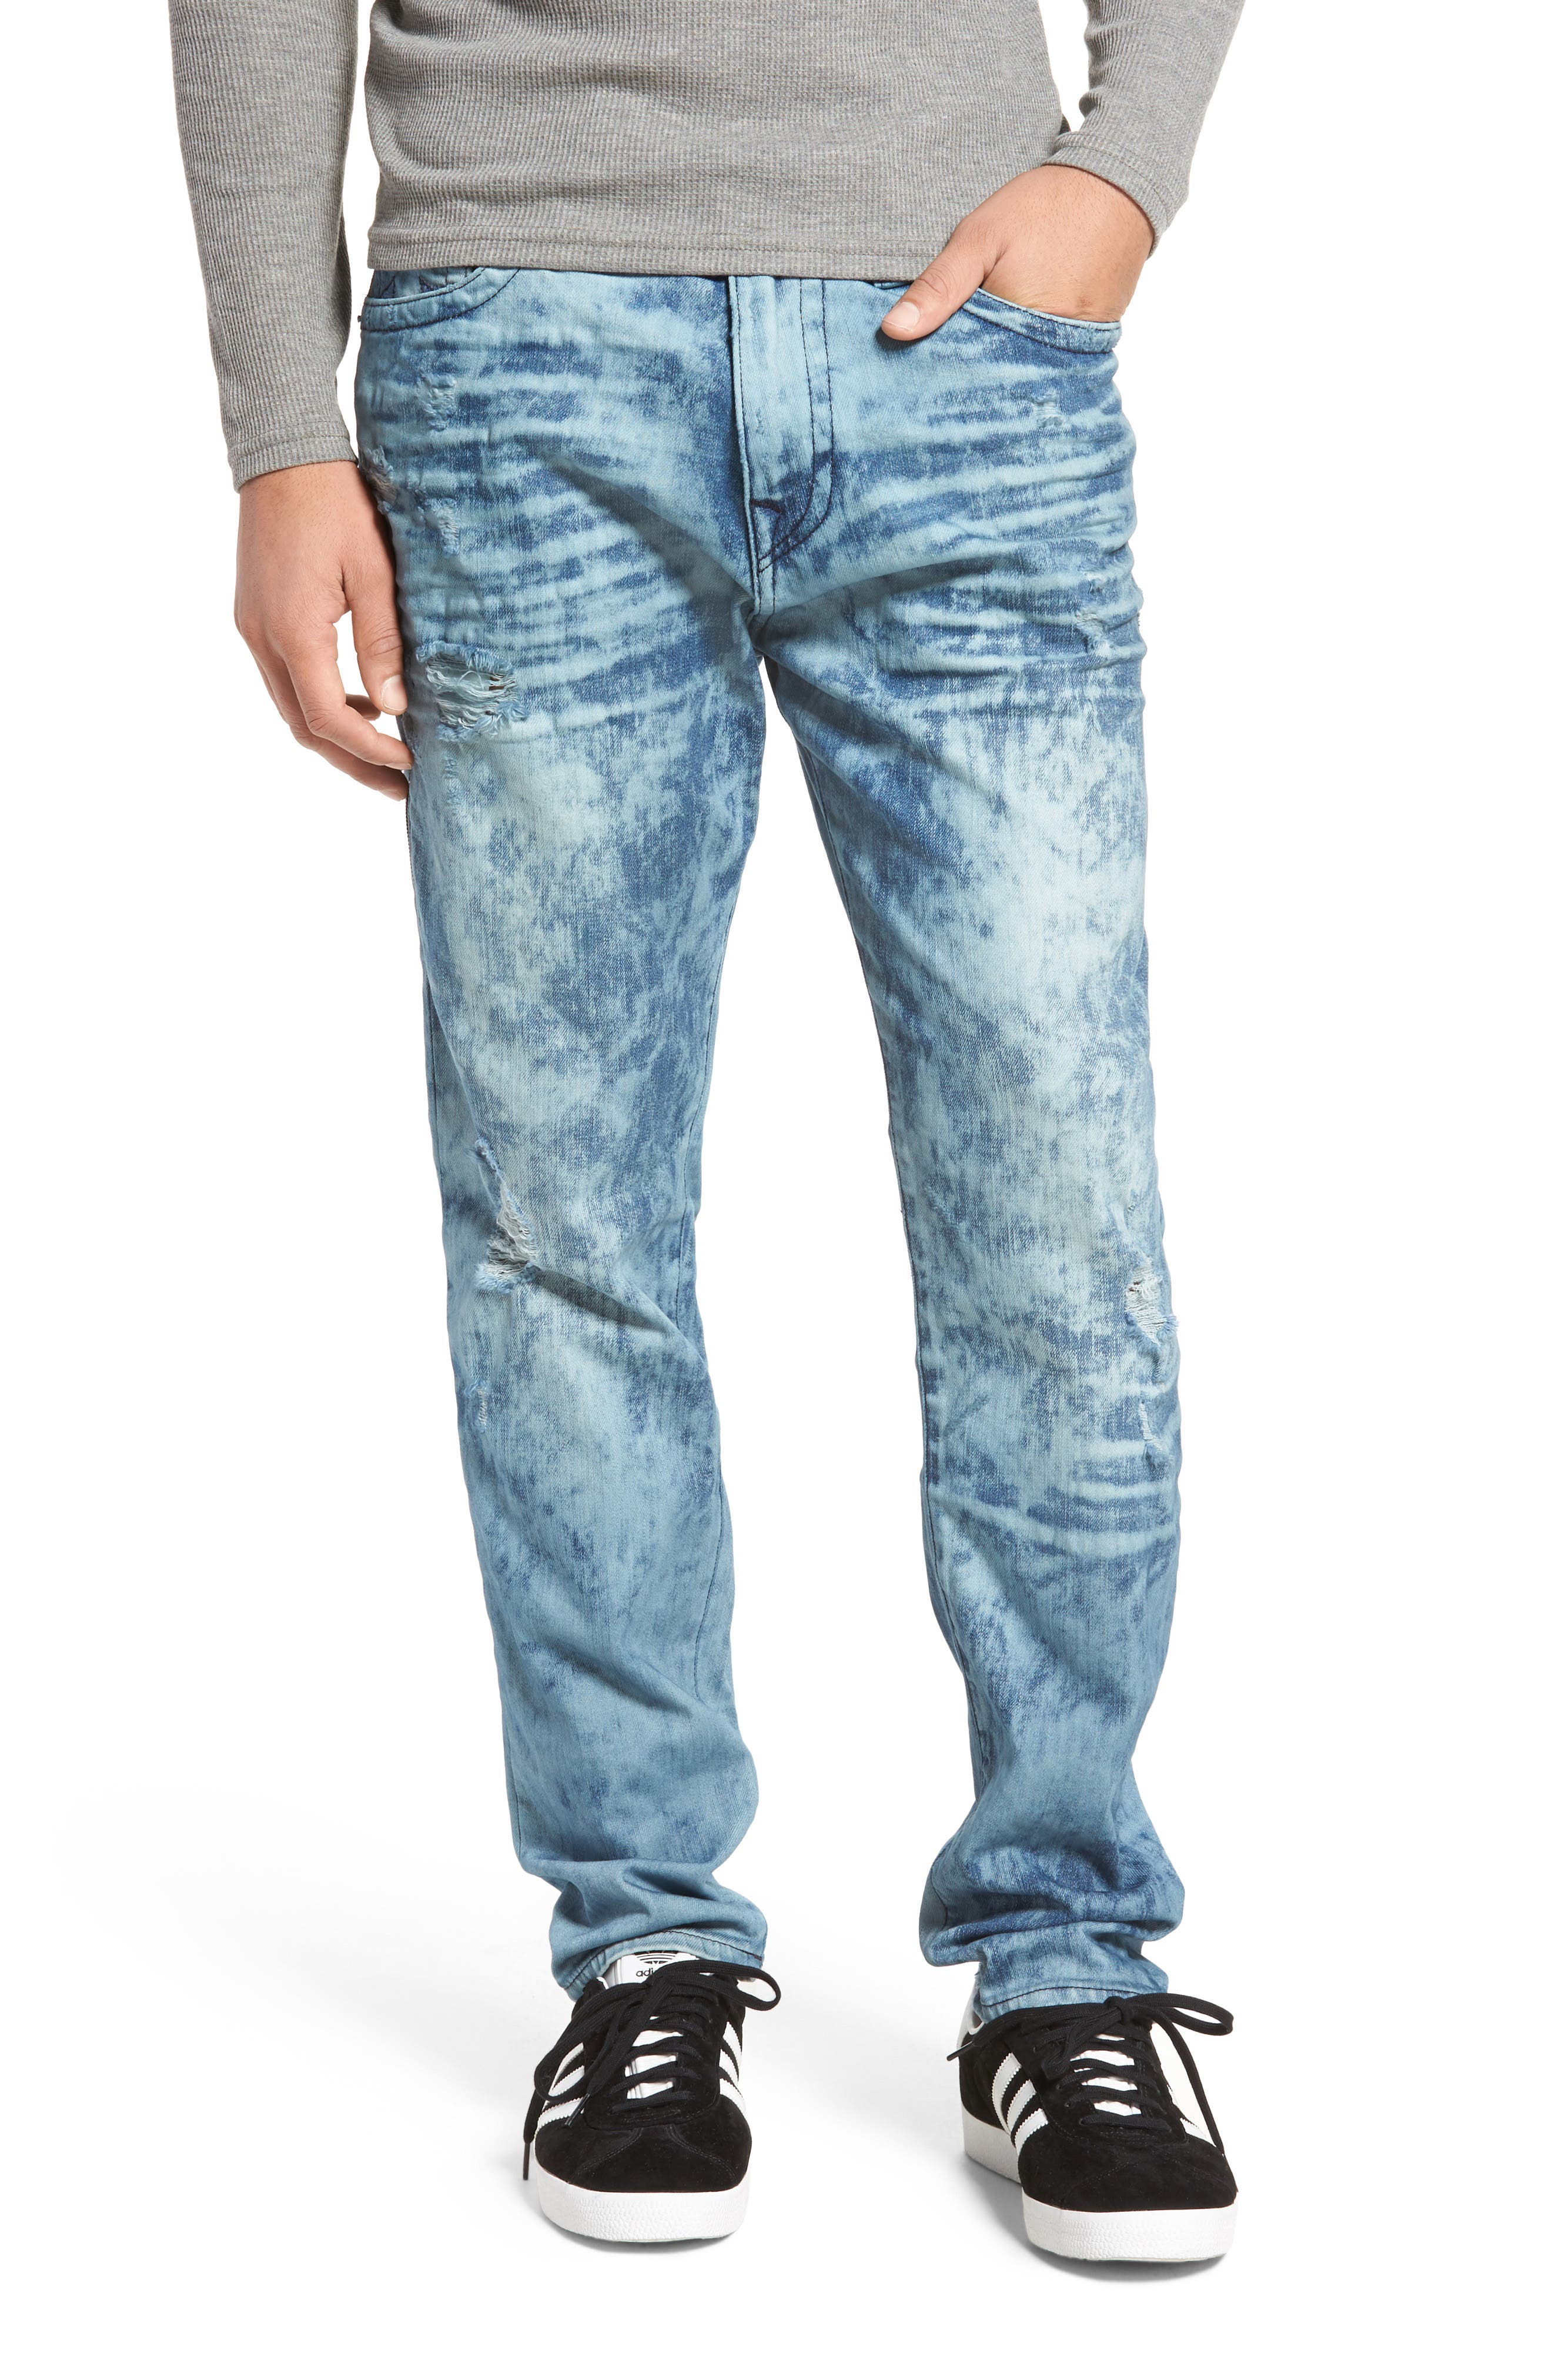 Mick Skinny Fit Jeans,                         Main,                         color, Retro Active